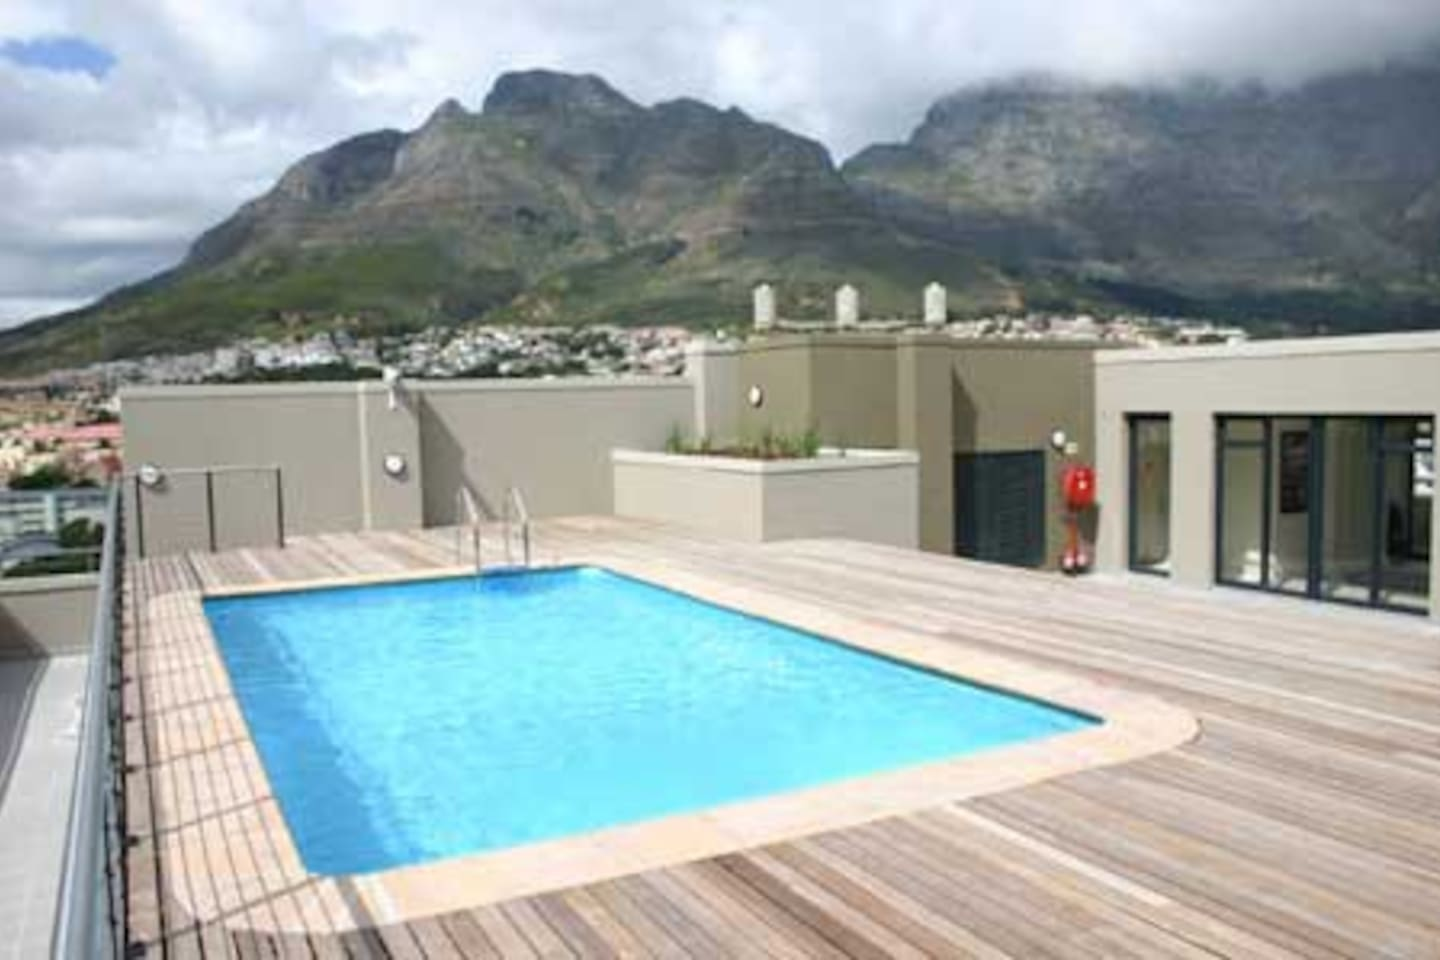 Devils Peak and Table mountain